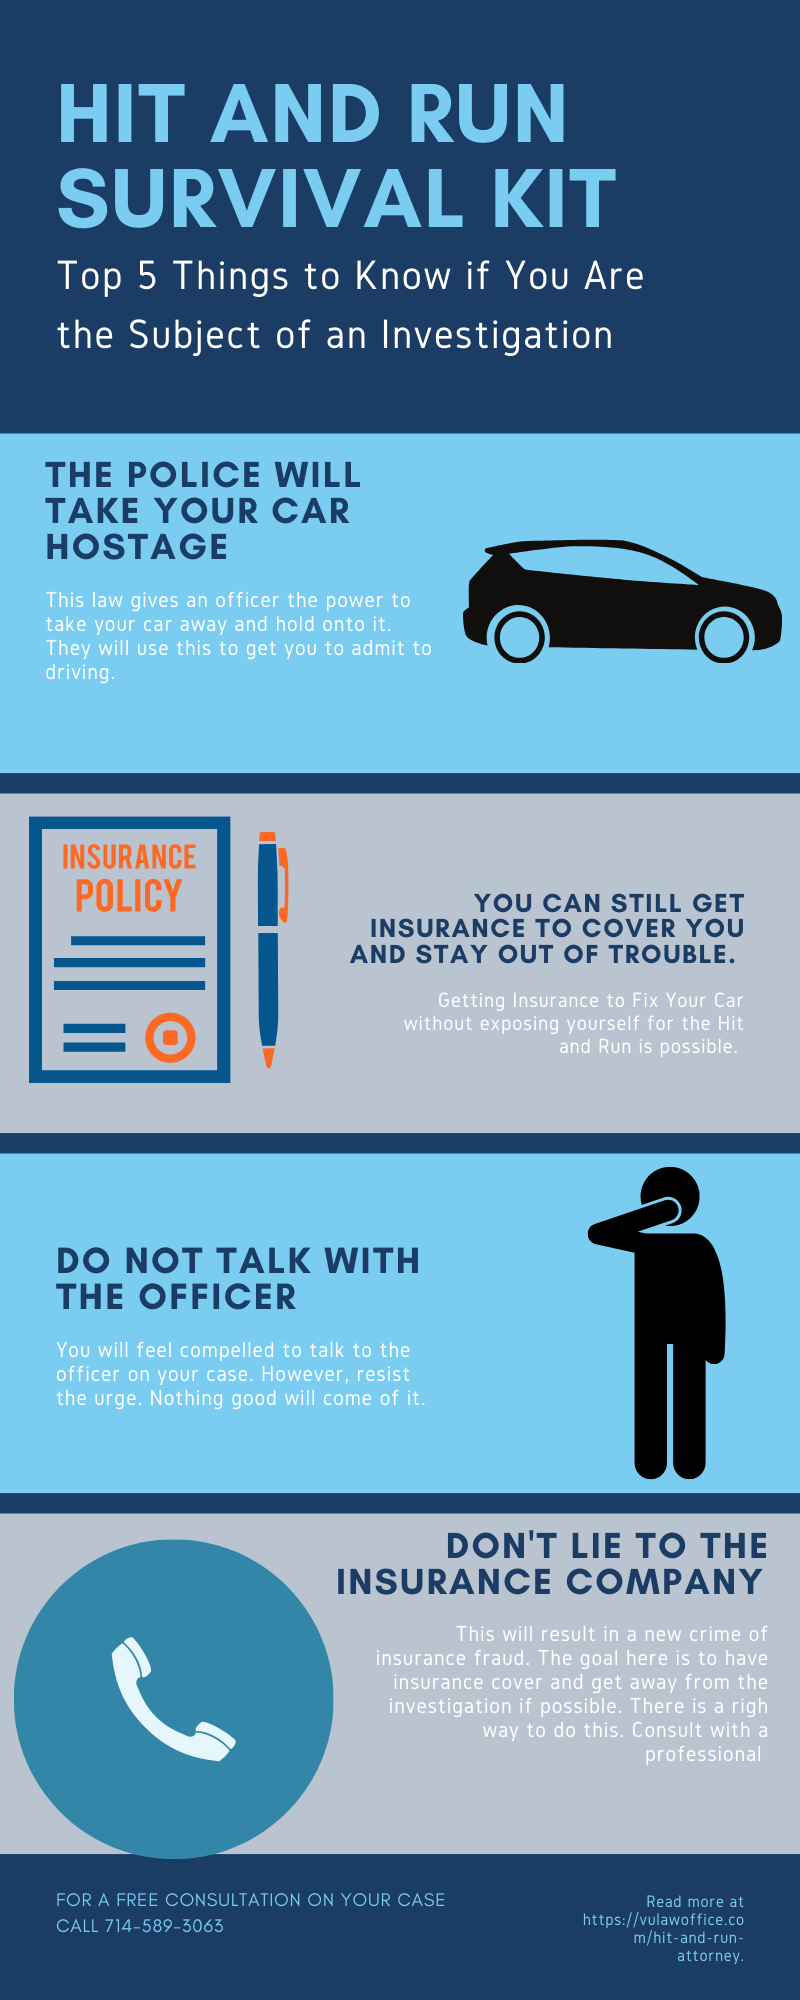 Infographic showing what to do if you are the subject of a hit and run